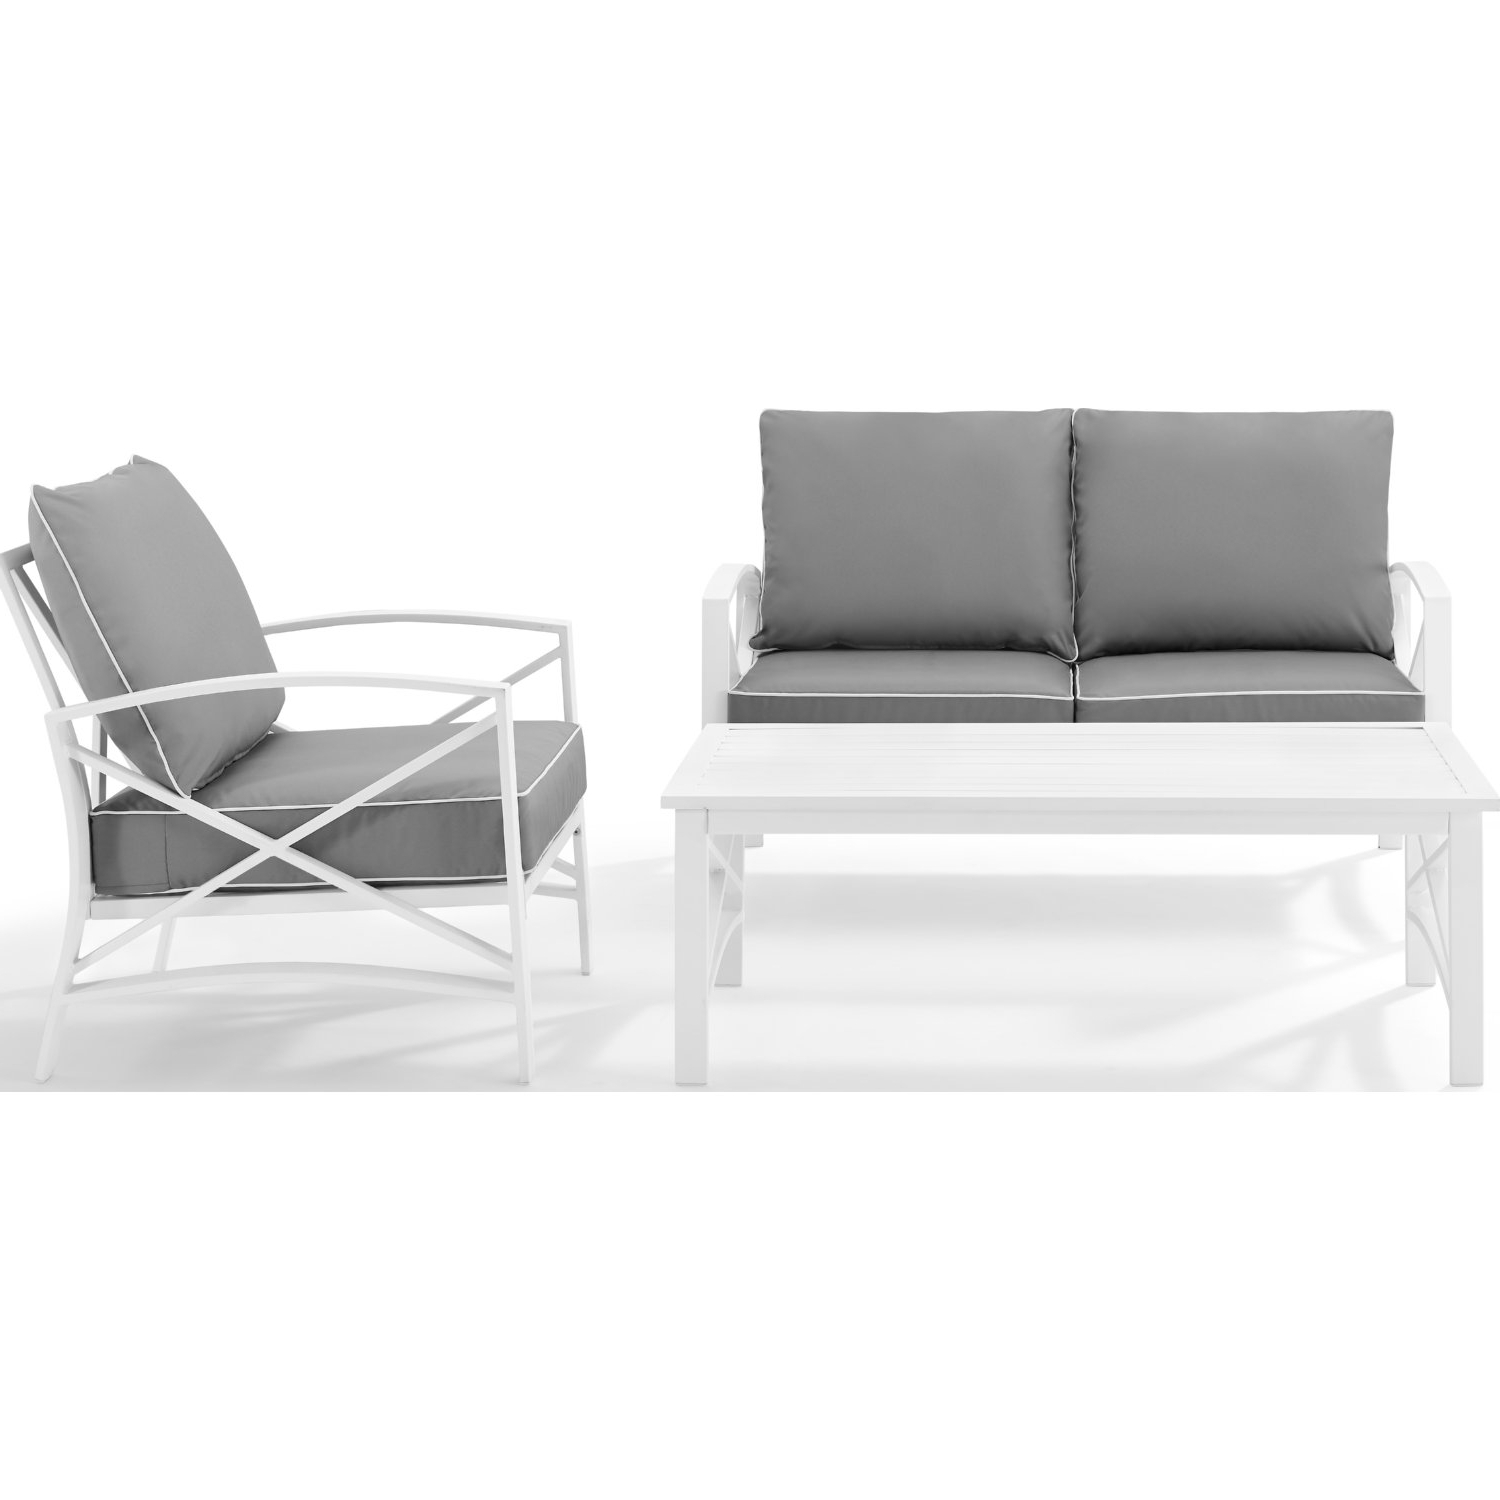 Well Known Freitag Loveseats With Cushions Regarding Kaplan 3 Piece Outdoor Loveseat Set W/ Grey Cushions (View 17 of 20)